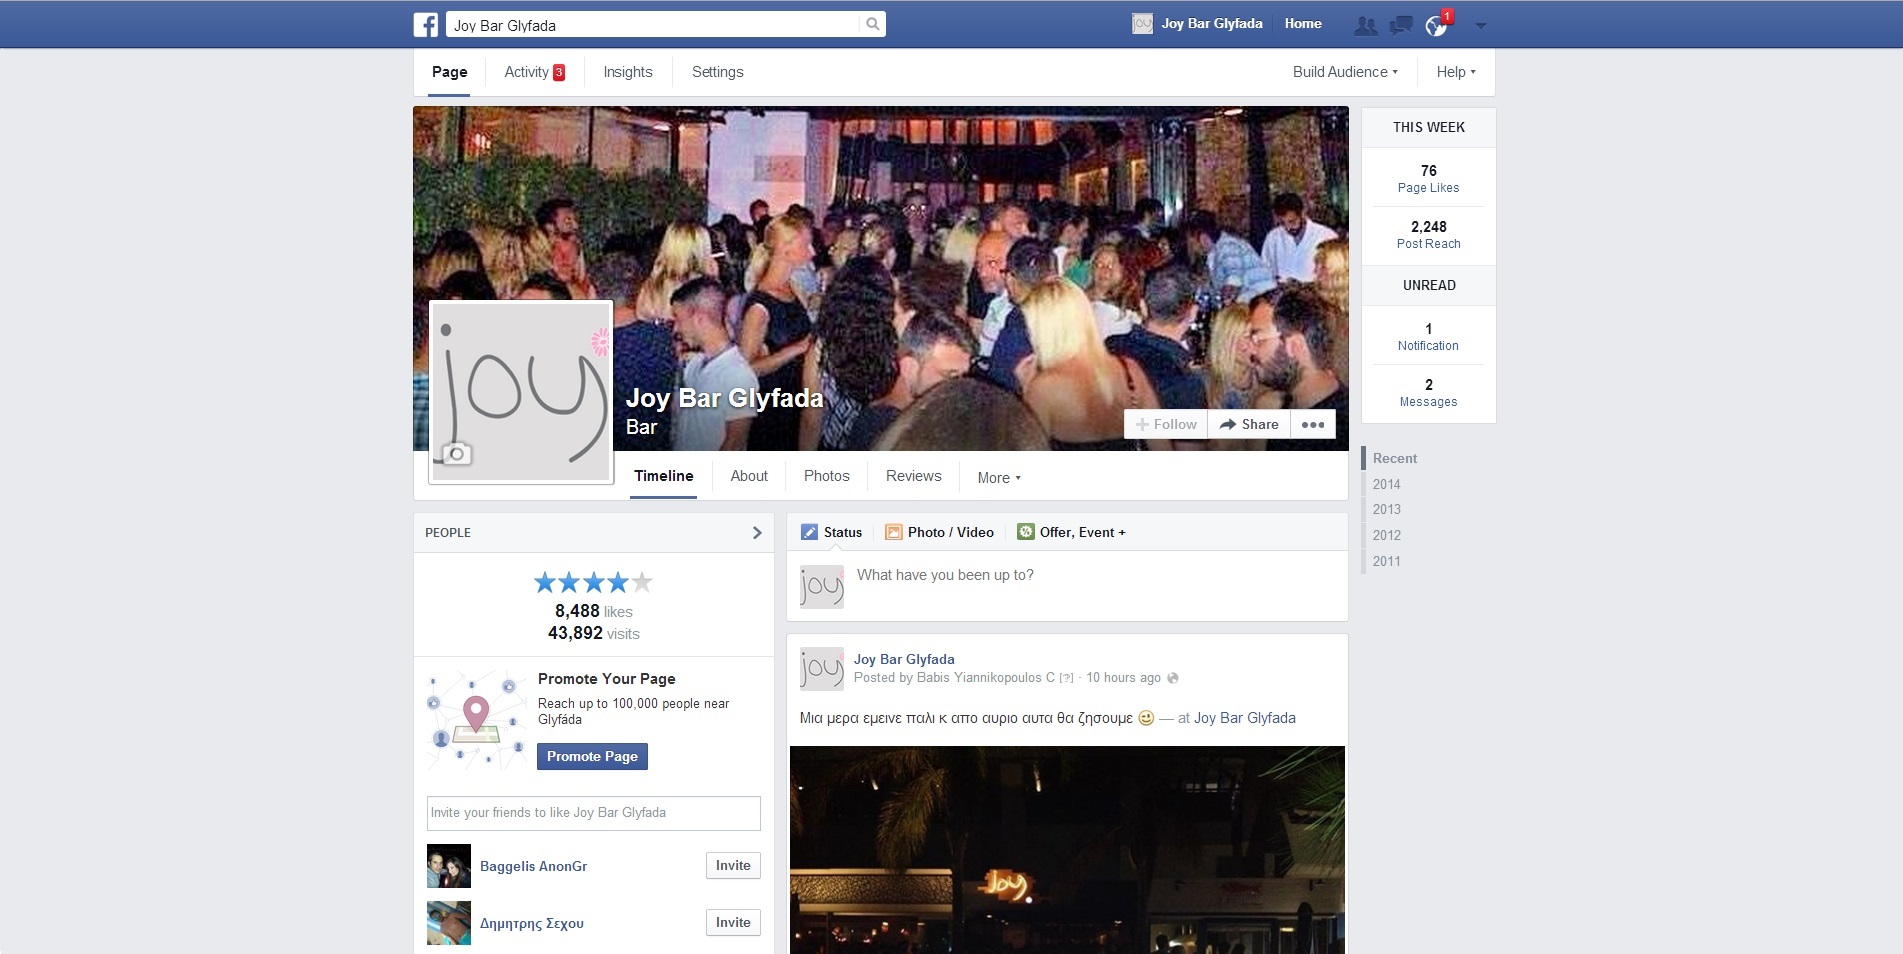 Joy Bar Facebook Page